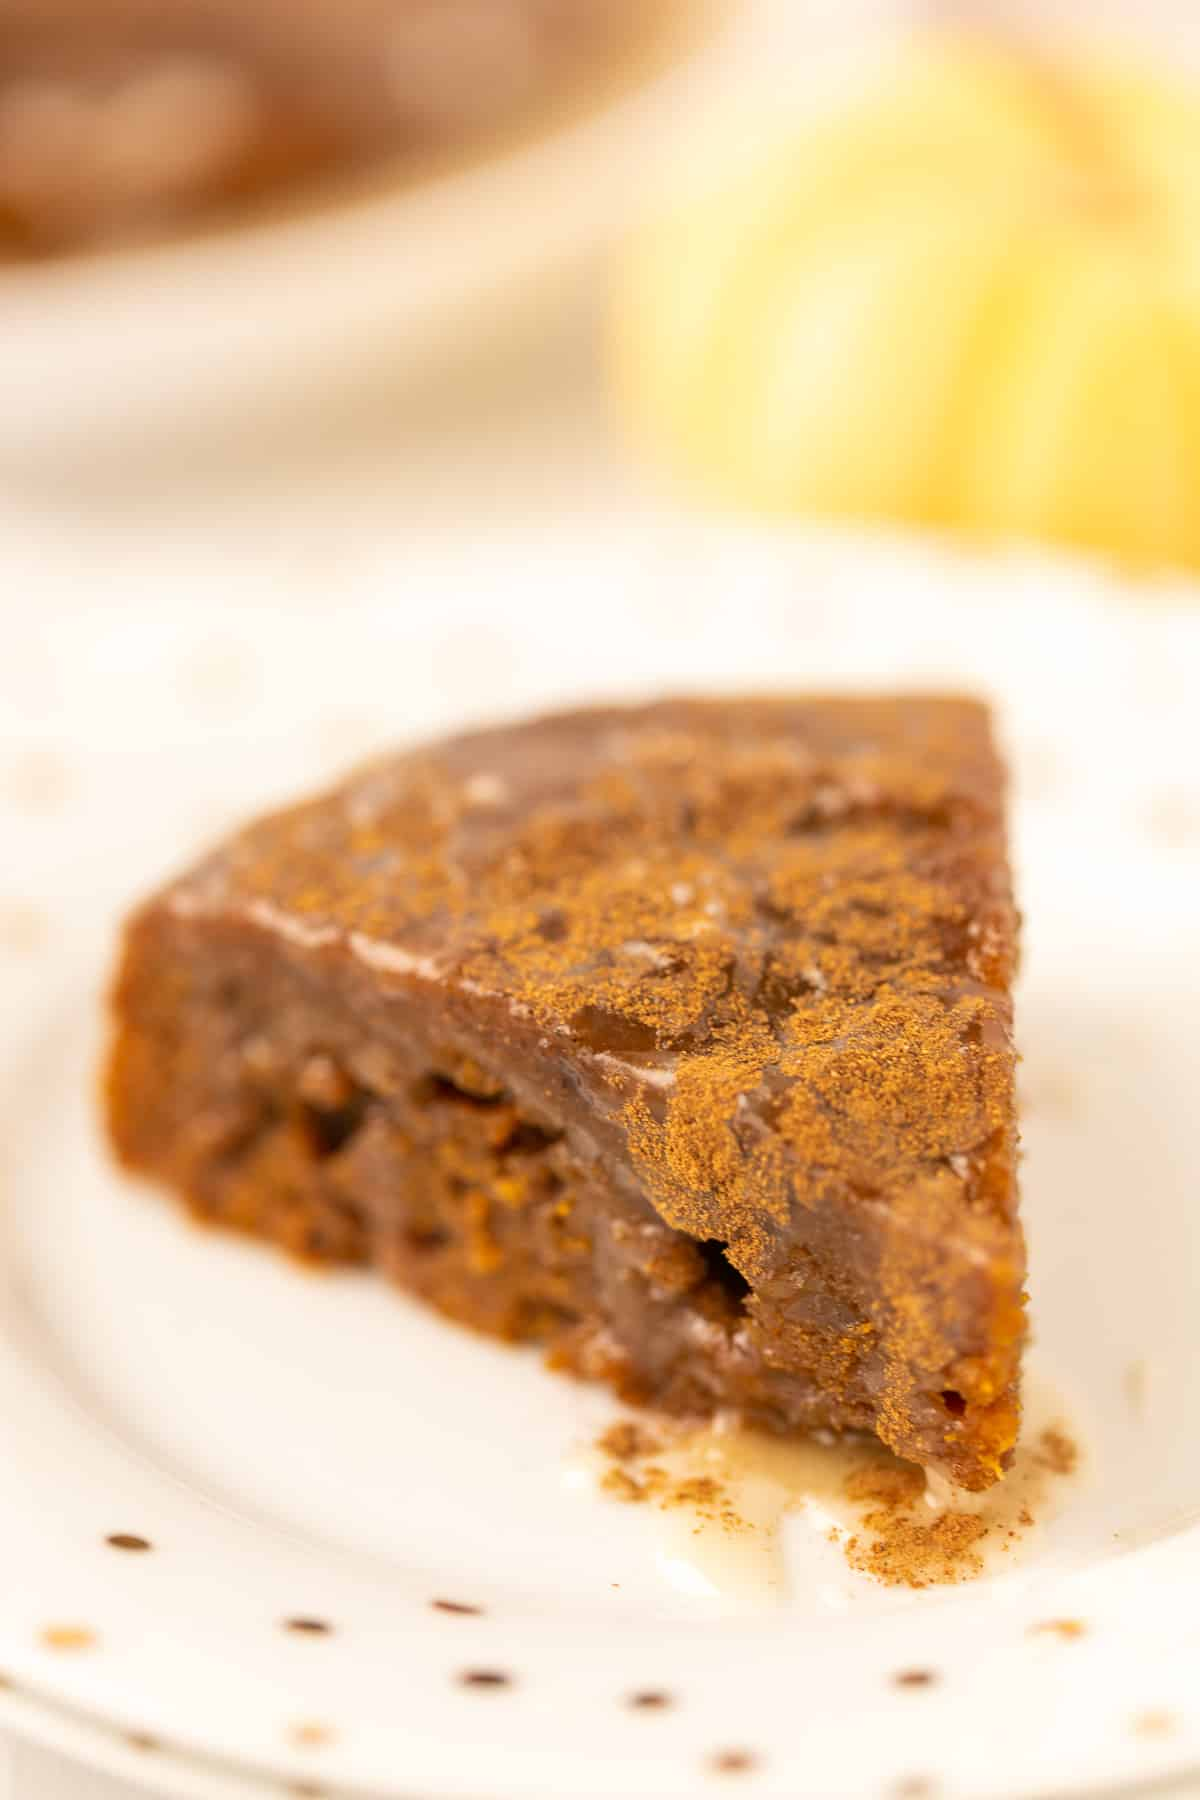 slice of instant pot pumpkin cake on a plate ready to eat